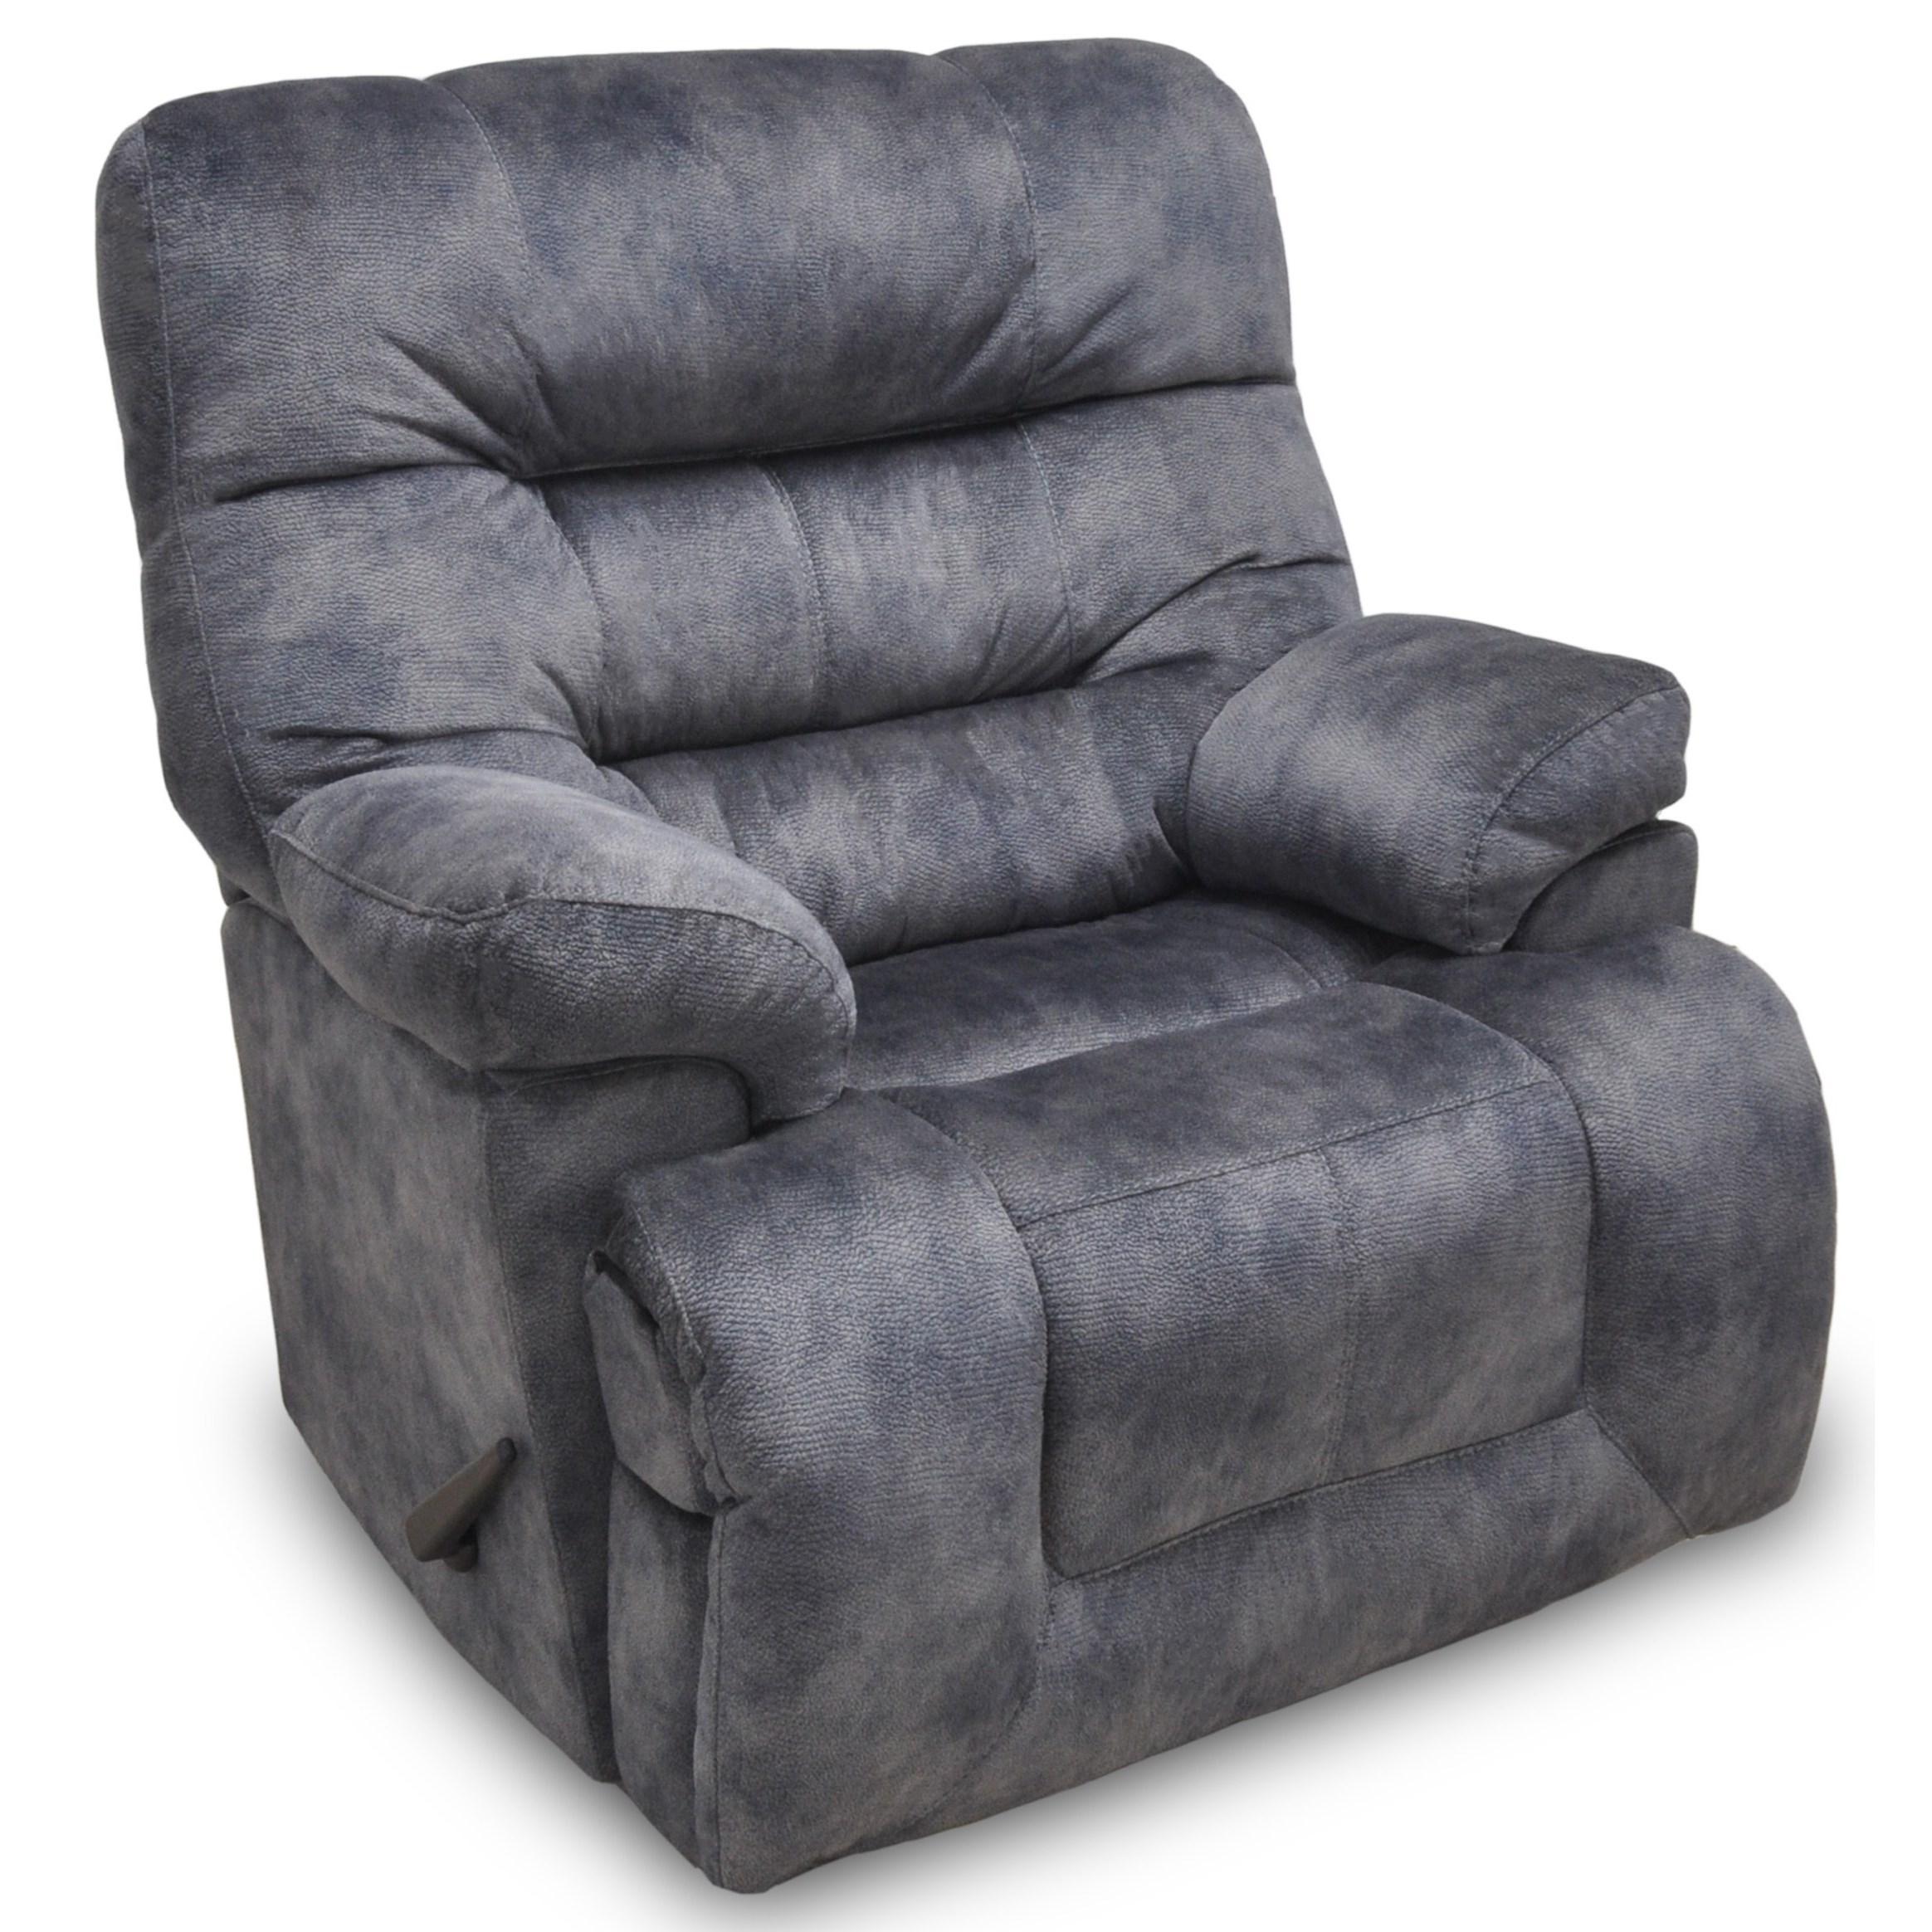 Franklin Recliners Boss Power Rocker Recliner with USB Port by Franklin at Catalog Outlet